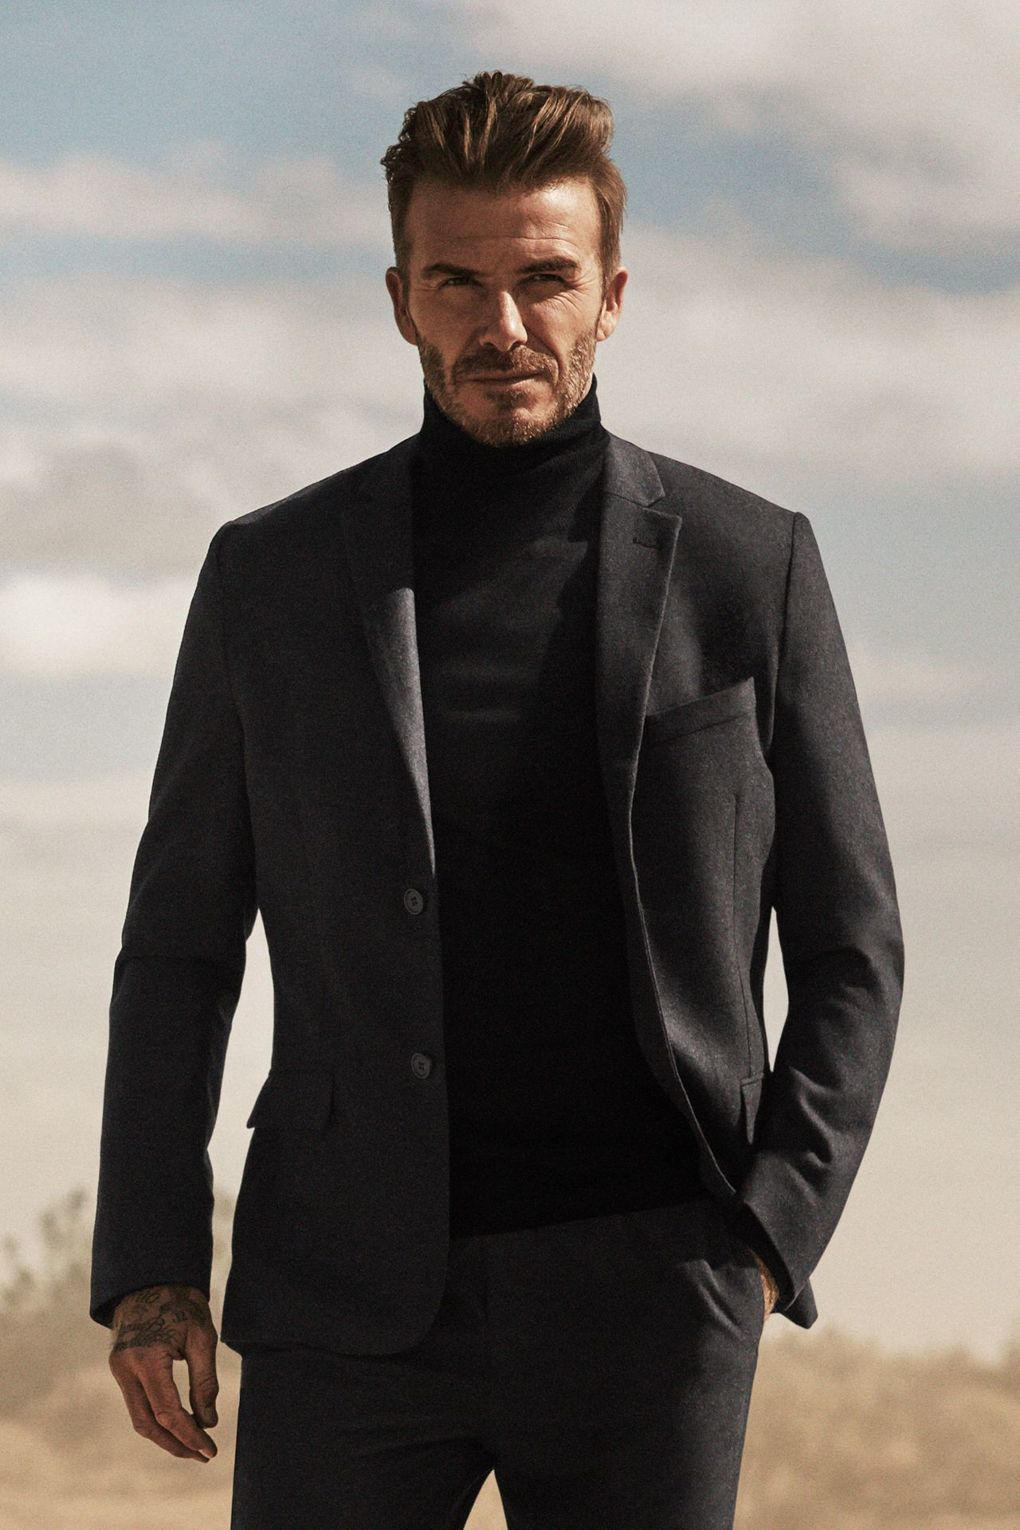 Ideal David Beckham Style & Looks | Men's Fashion DY63